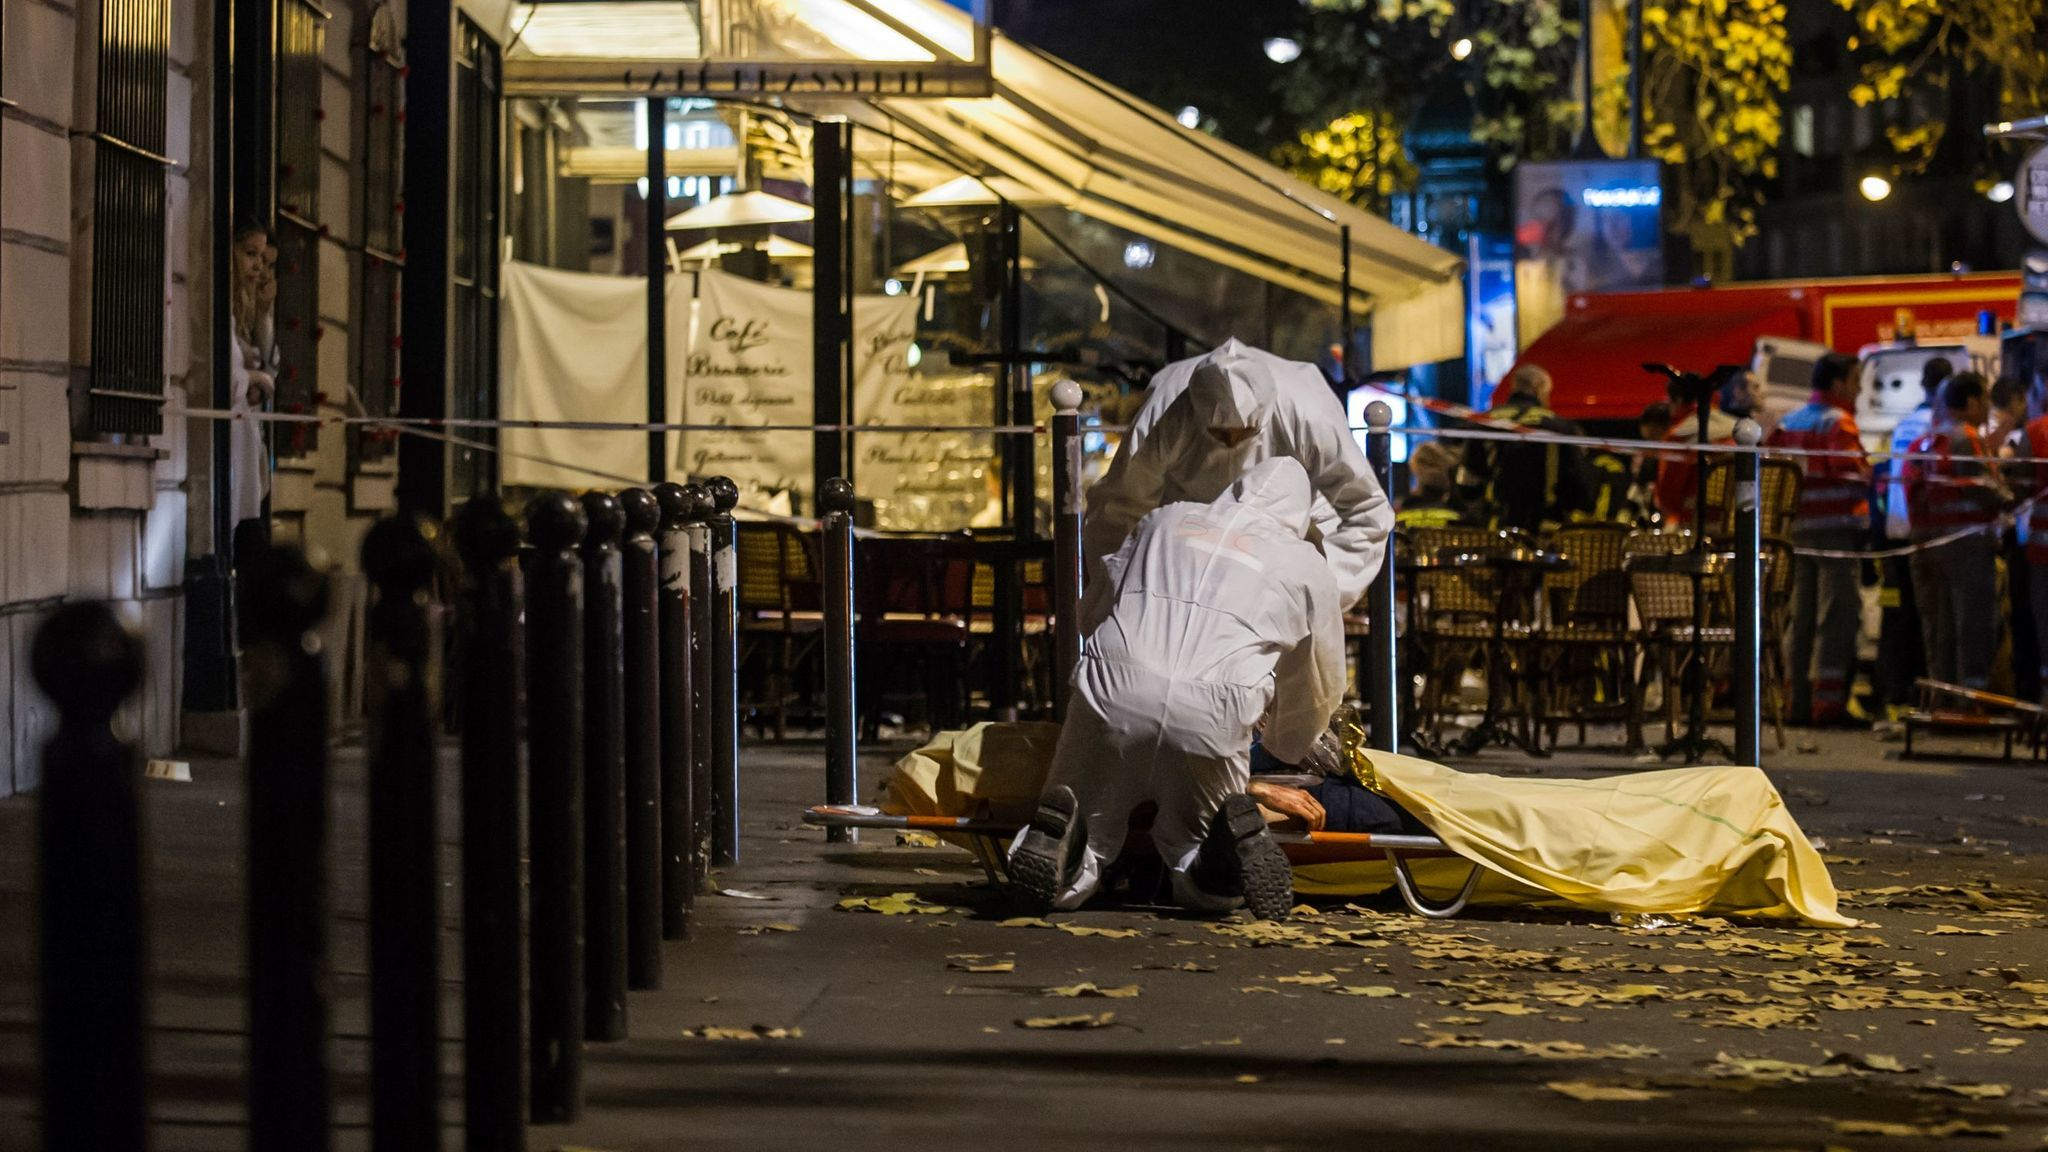 Investigating police officers inspect the lifeless body of a victim of a shooting attack outside the Bataclan concert hall in Paris on Nov. 13, 2015.